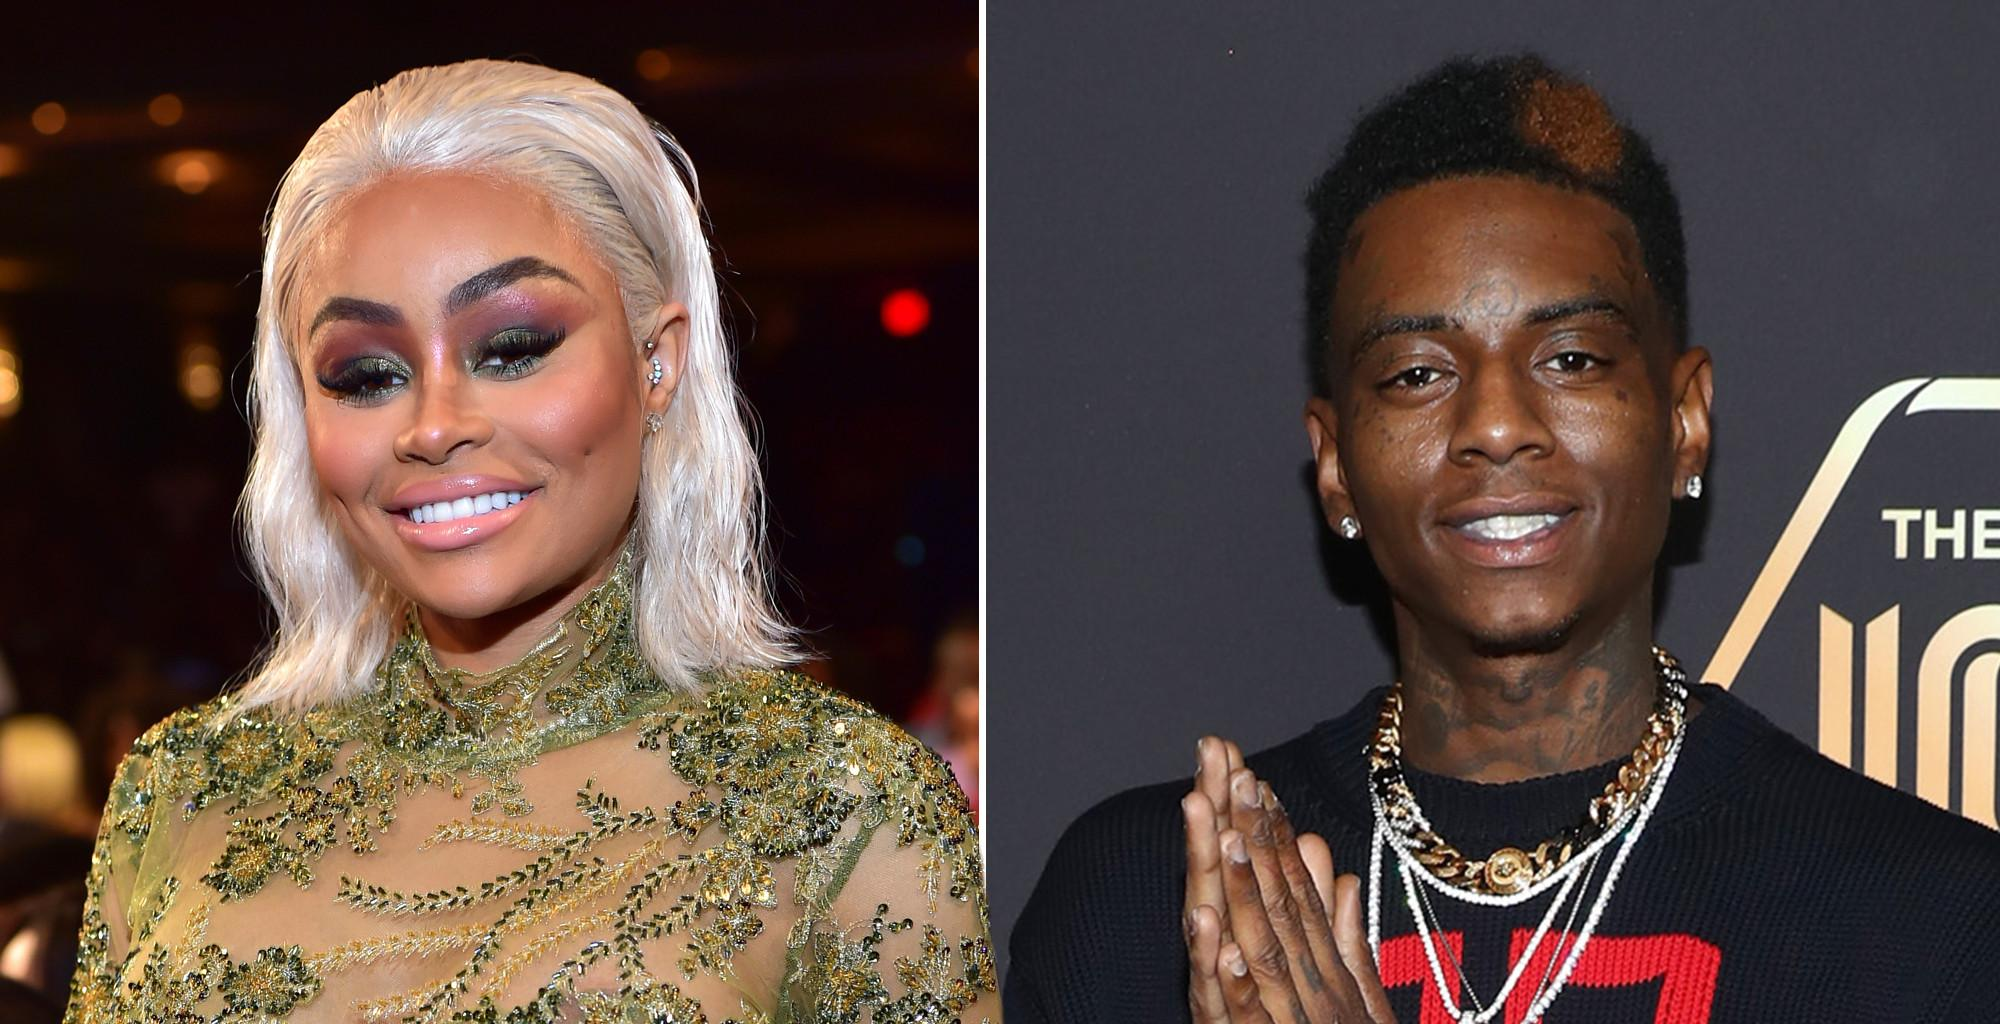 Blac Chyna And Soulja Boy Reportedly Broke Up After Fighting Over Tyga!